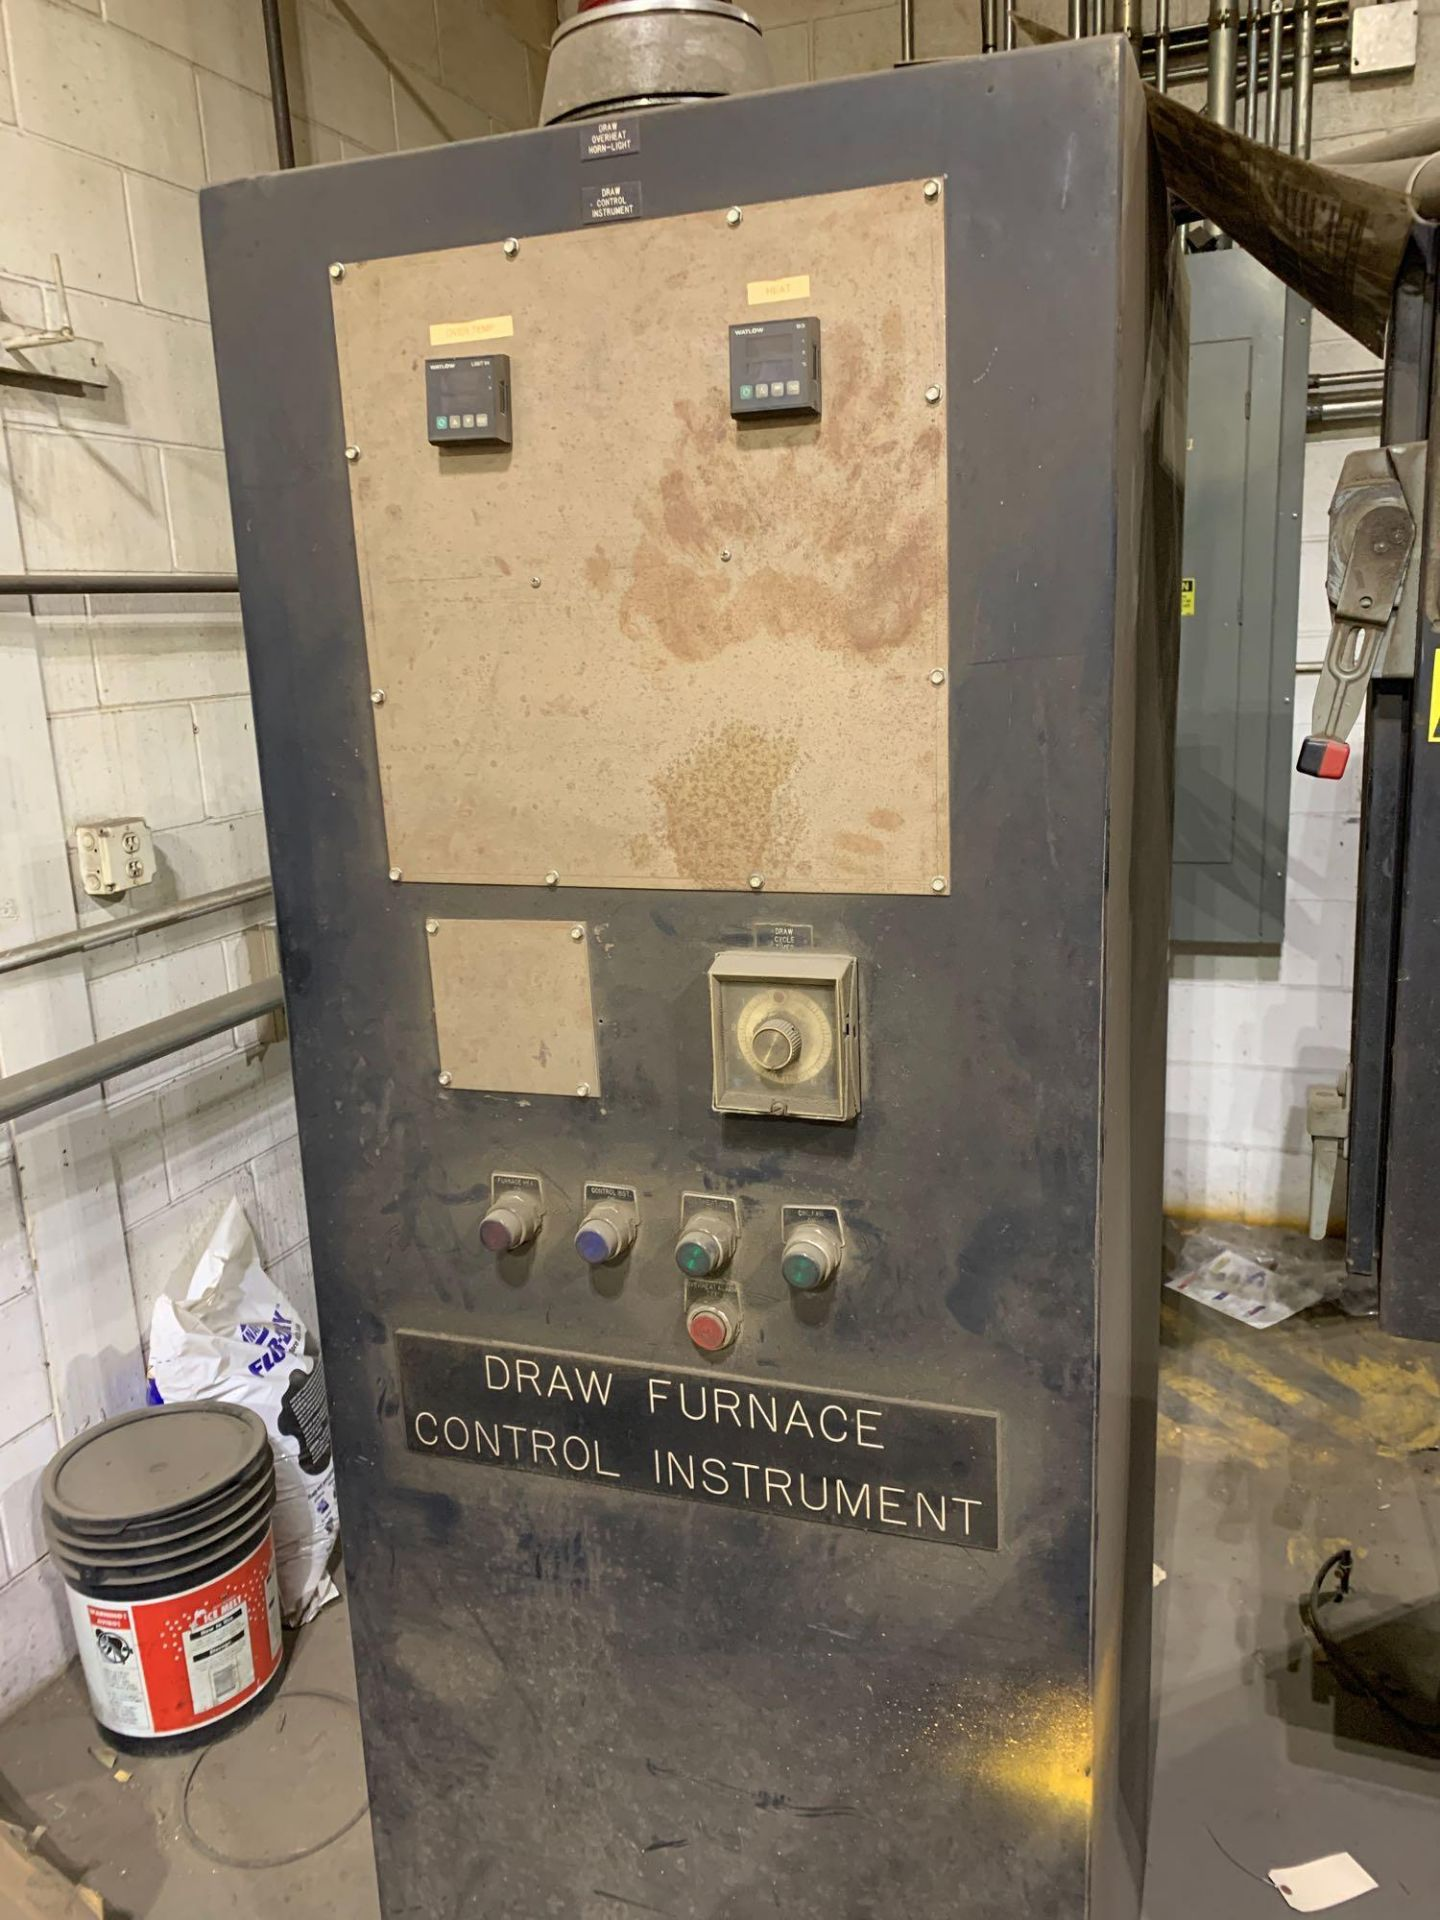 Dow Furnace Co. Electric Draw Furnace Seller States It Will Do At Least 1200 Degrees Model Bxe-24362 - Image 6 of 21